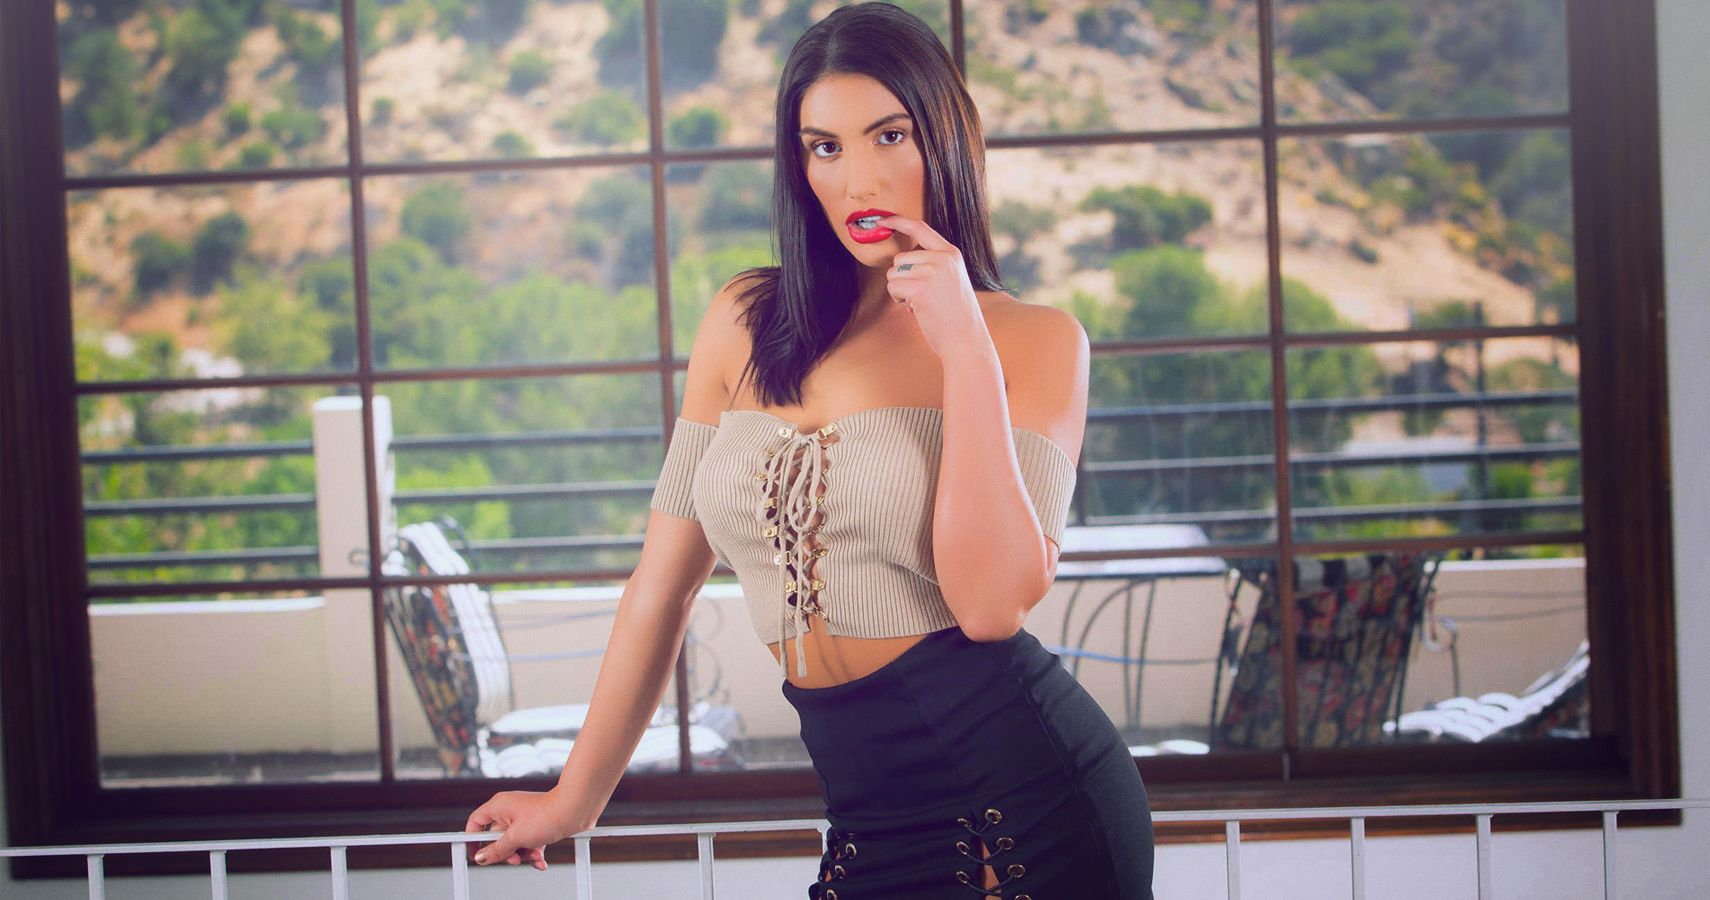 August ames and abella danger hd